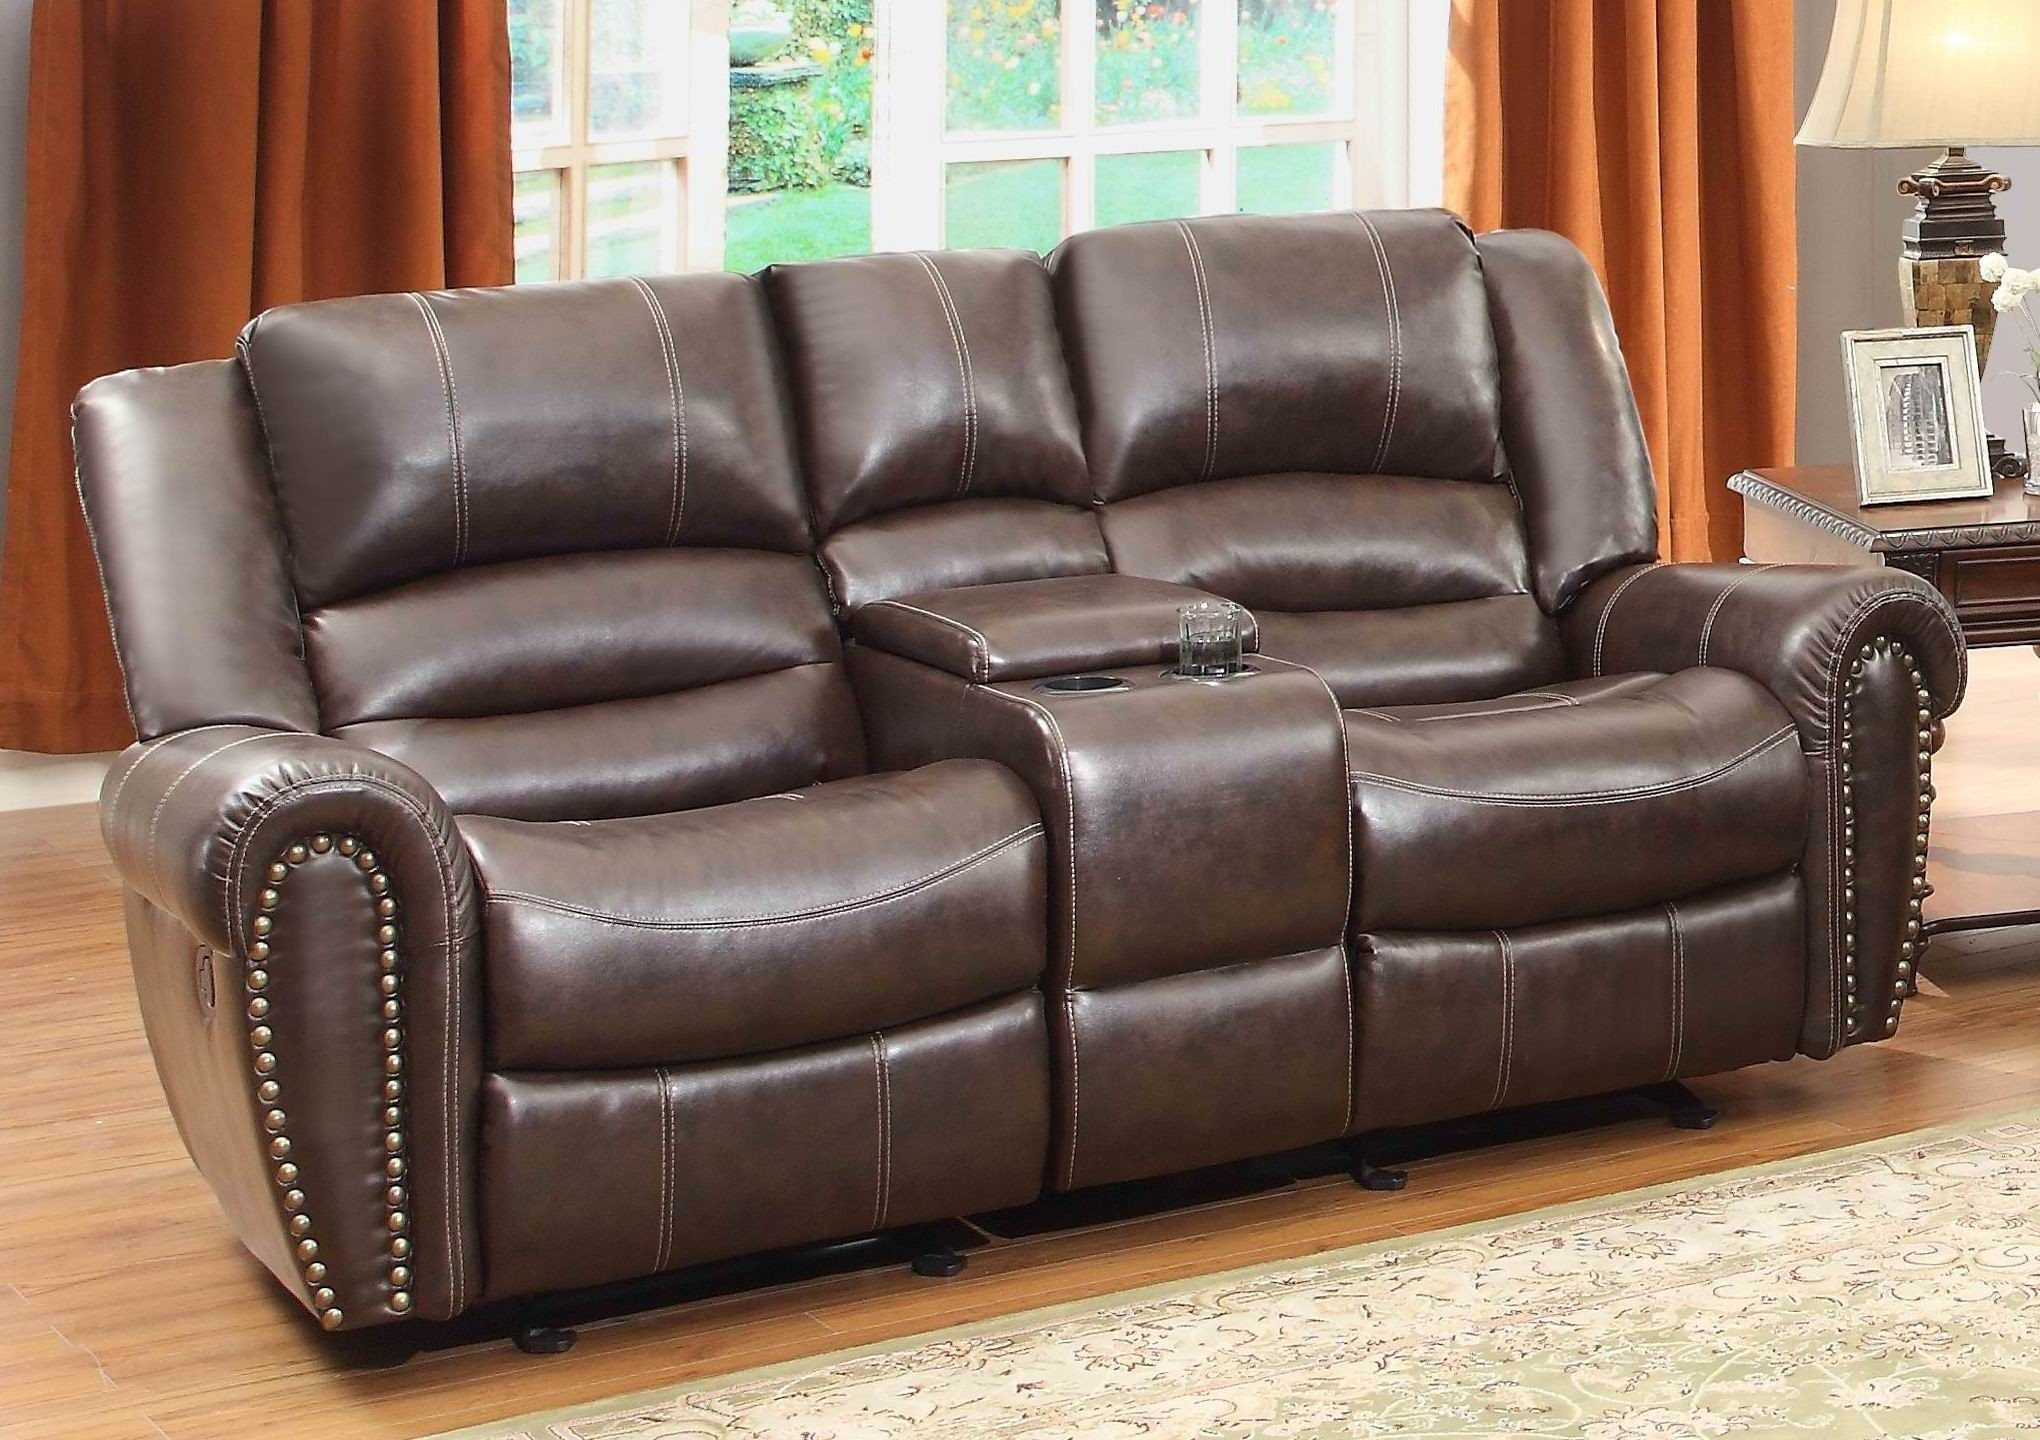 center hill brown double glider reclining loveseat with console from homelegance 9668brw 2. Black Bedroom Furniture Sets. Home Design Ideas